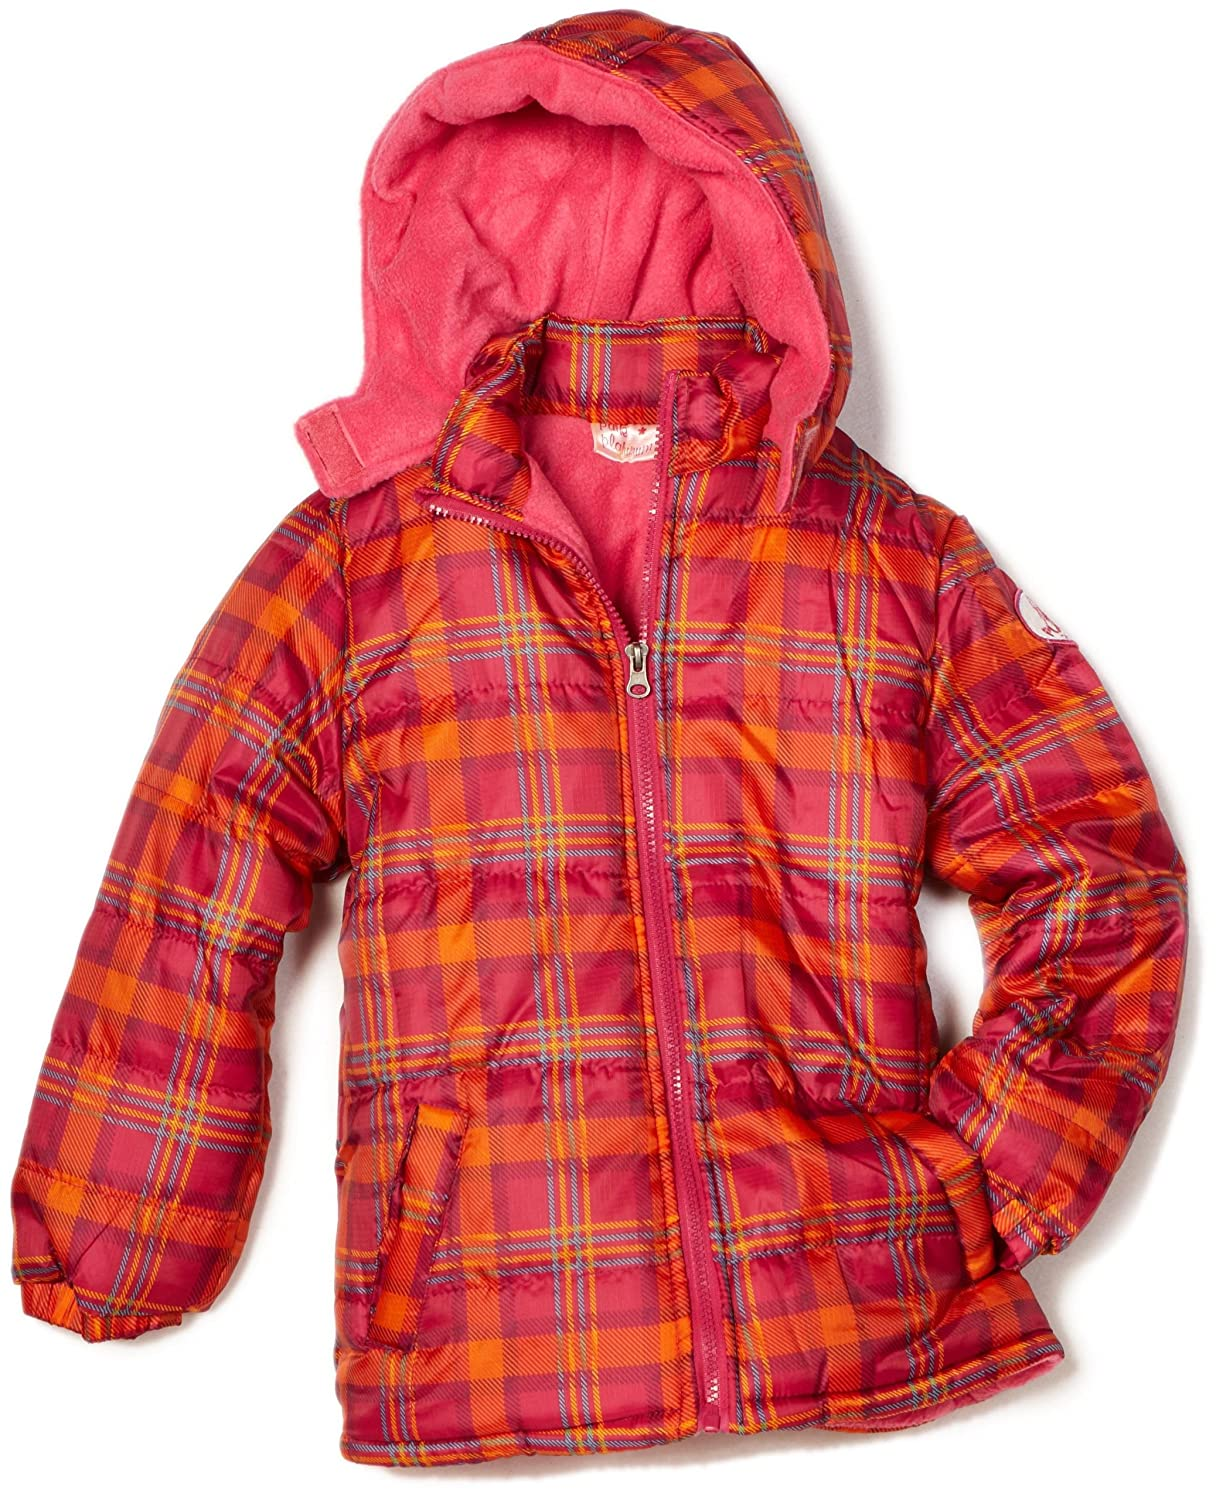 Amazon Clearance: Girls Winter Coats Clearance – Up To 75